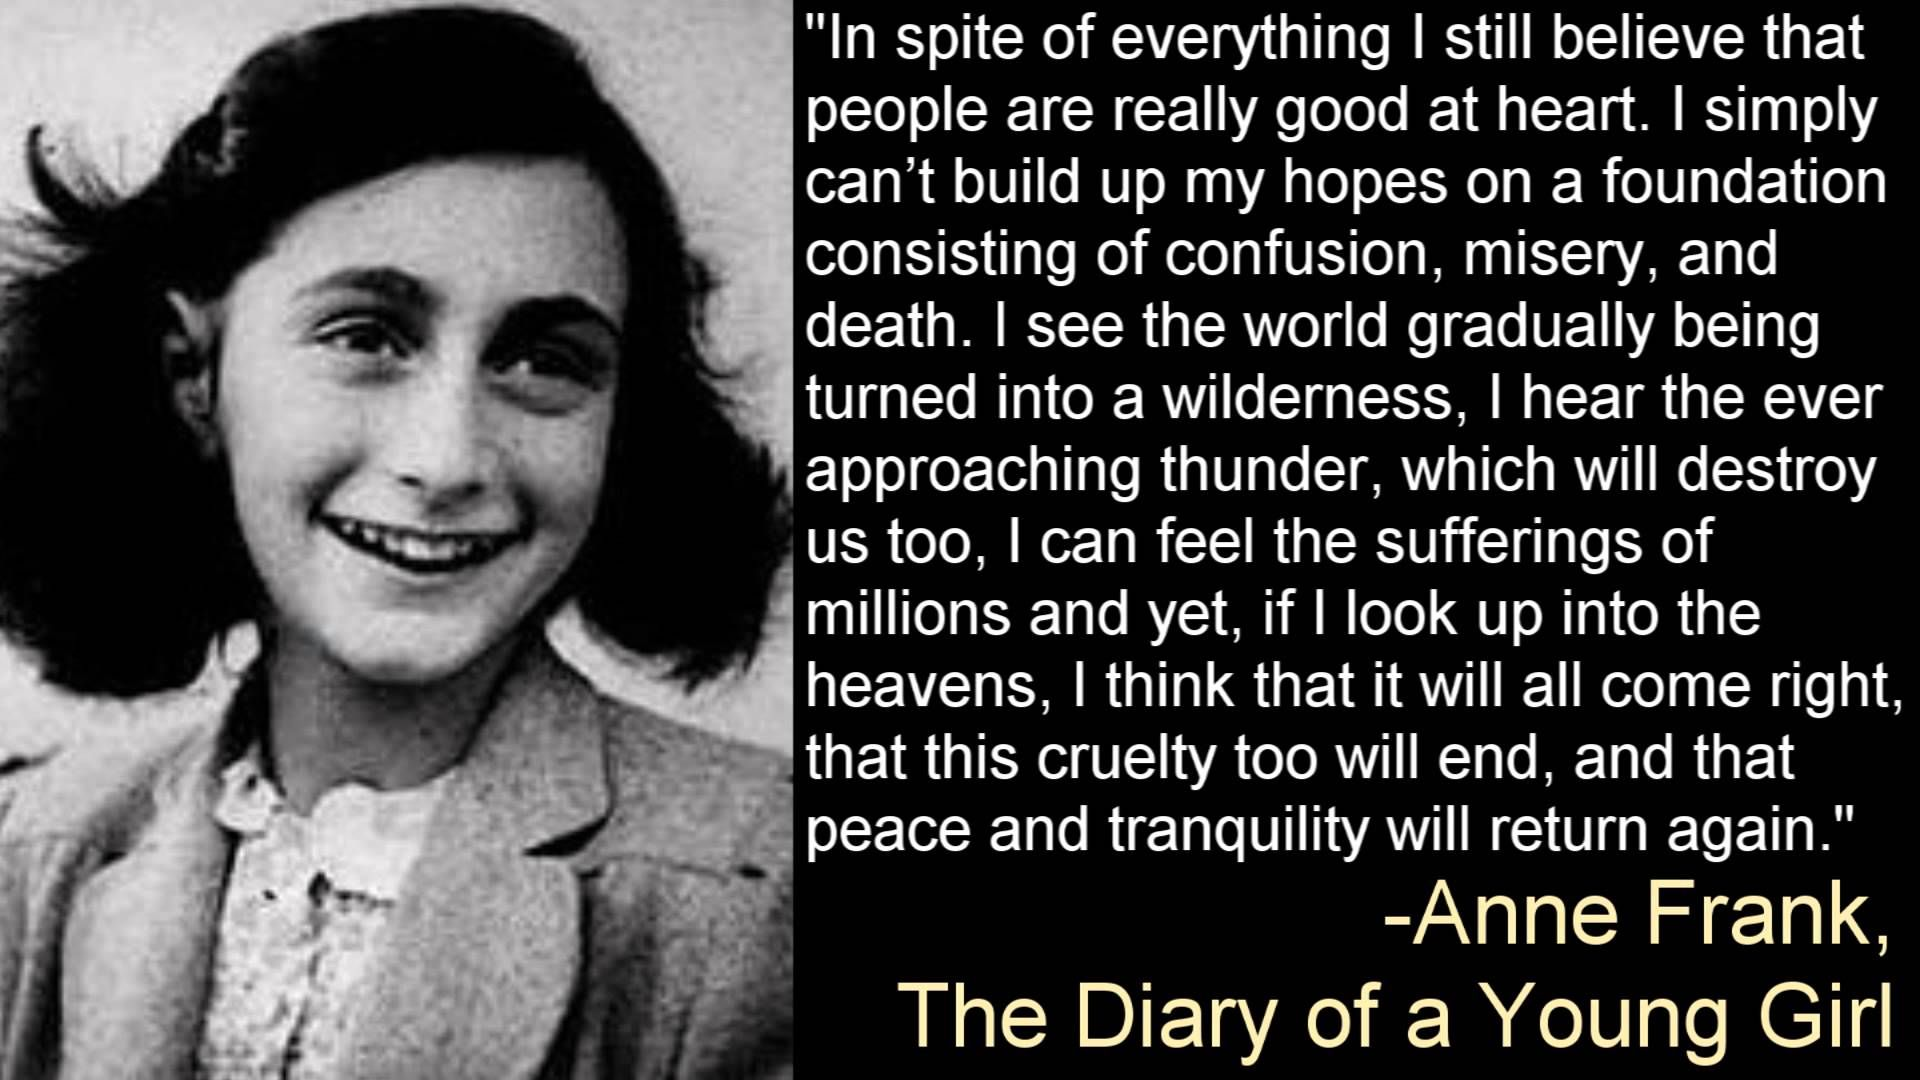 Holocaust Survivor Quotes A Girl's View Of The Holocaust An Open Letter To Anne Frank